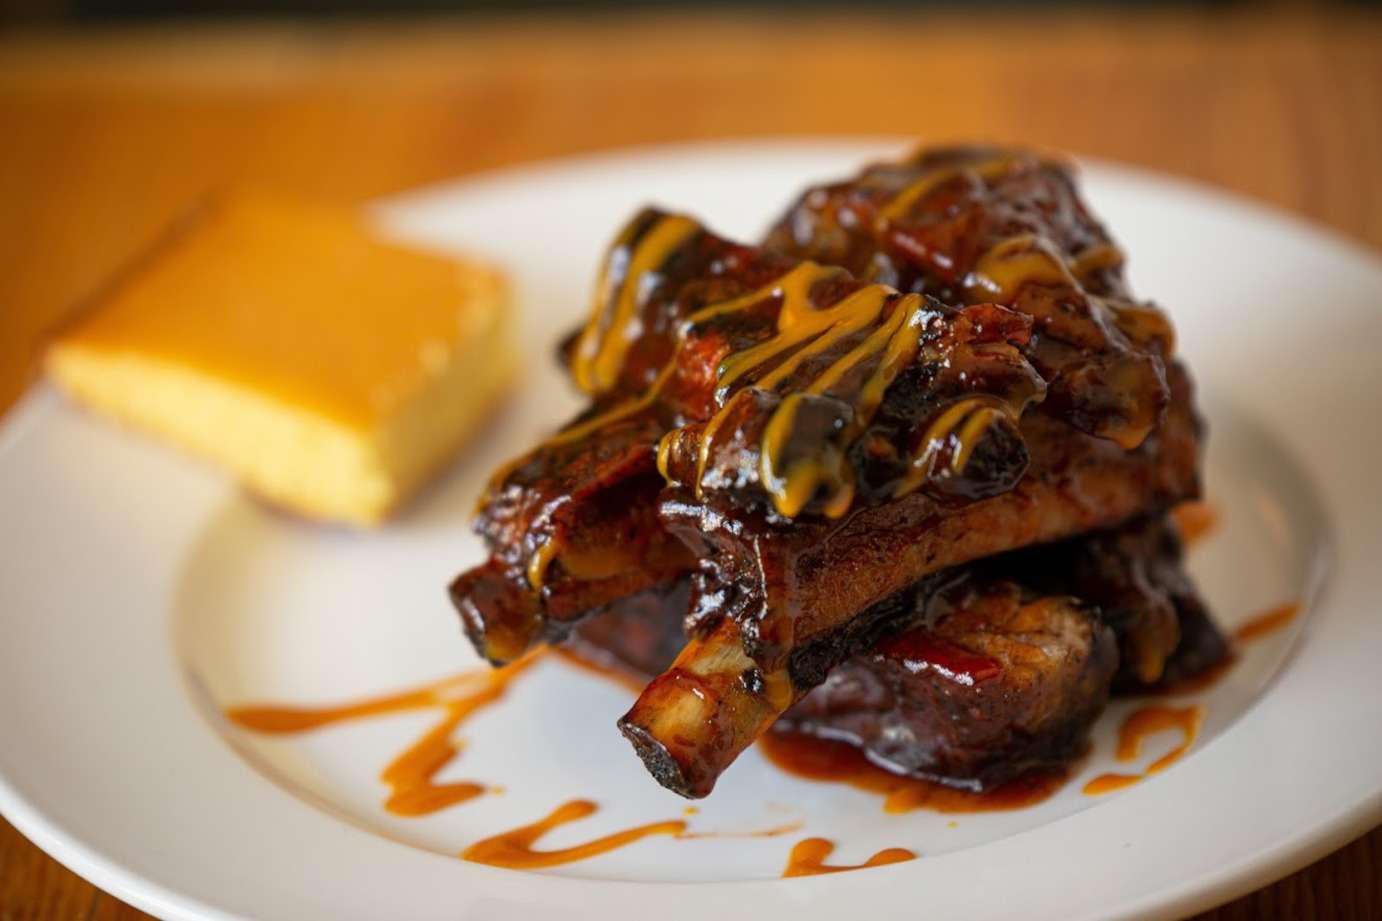 Slow smoked ribs with herbs and spices with sauces